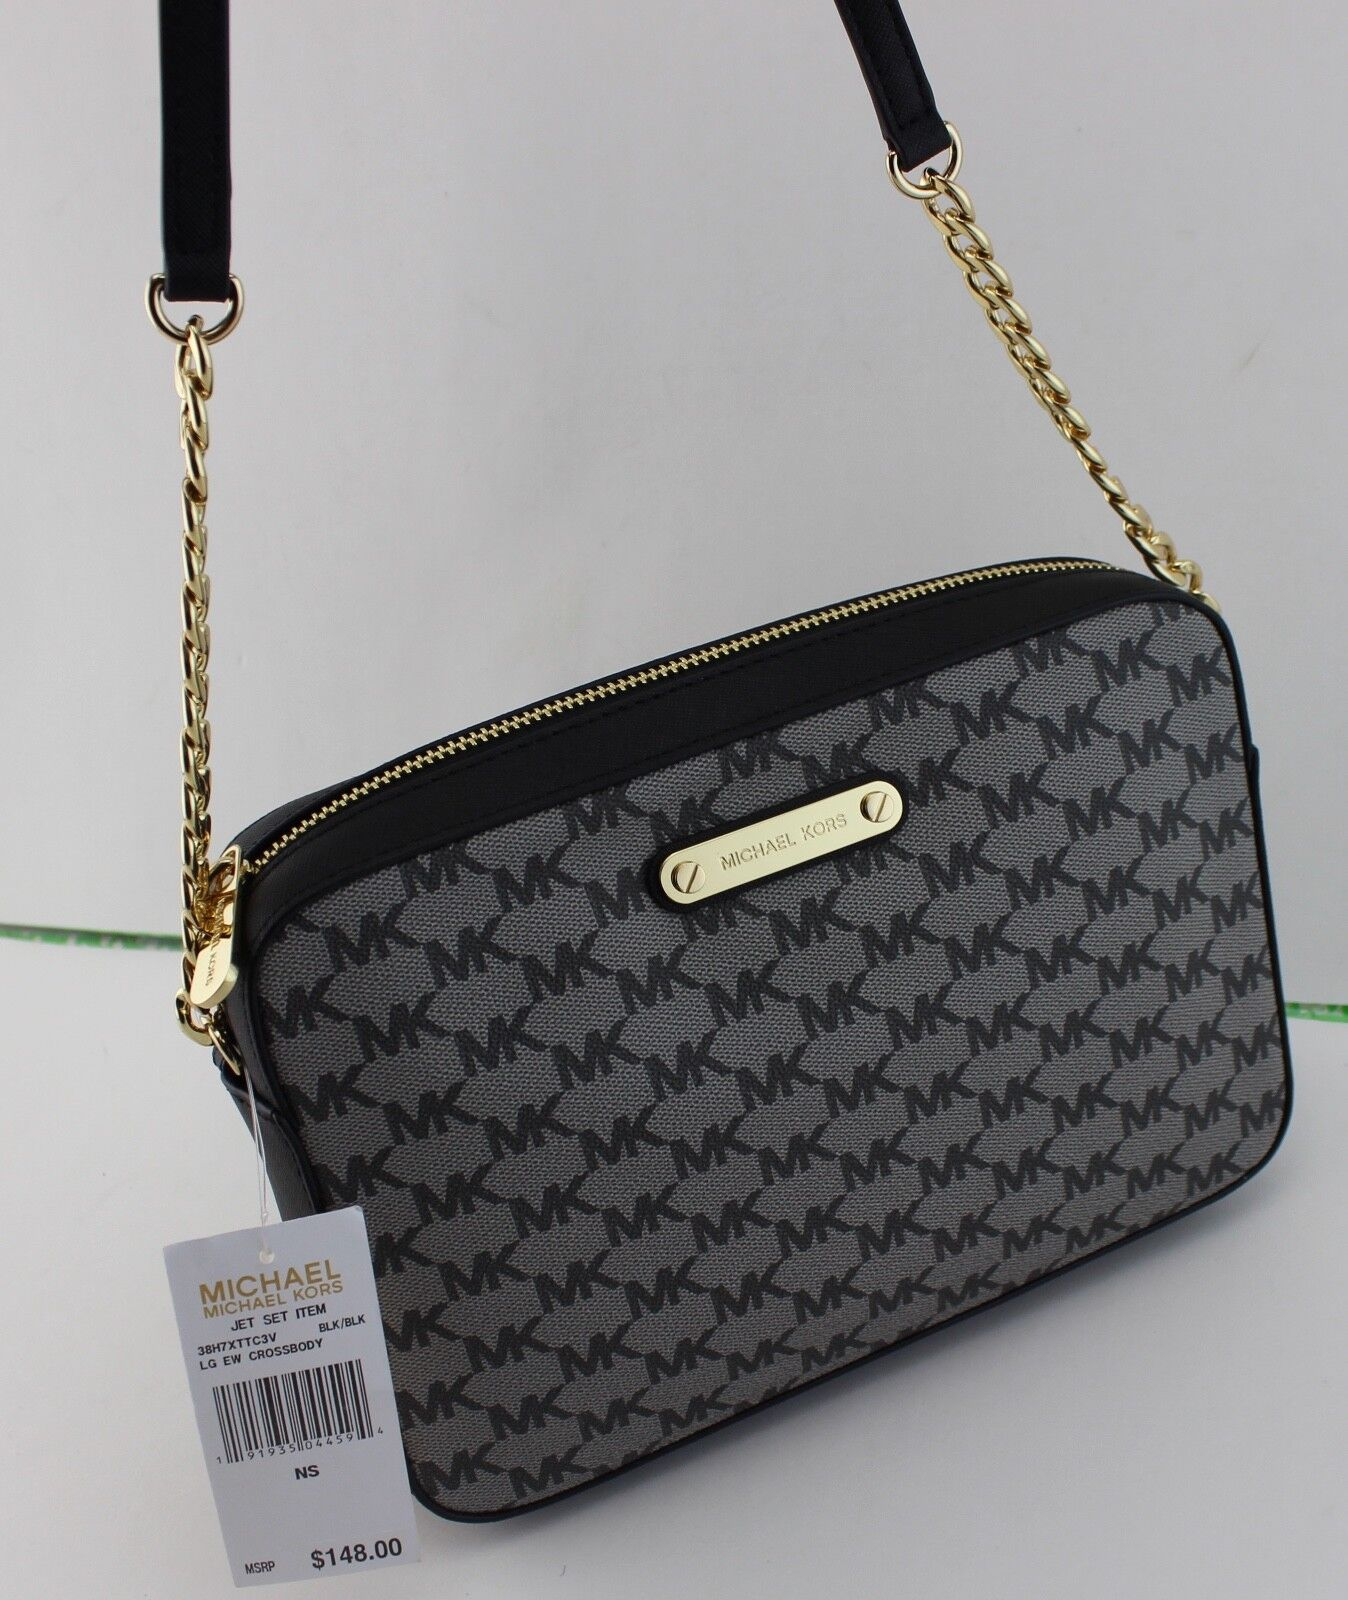 31030f6c44e0 Michael Kors Jet Set Large EW Crossbody 38h7xttc3v Black for sale ...